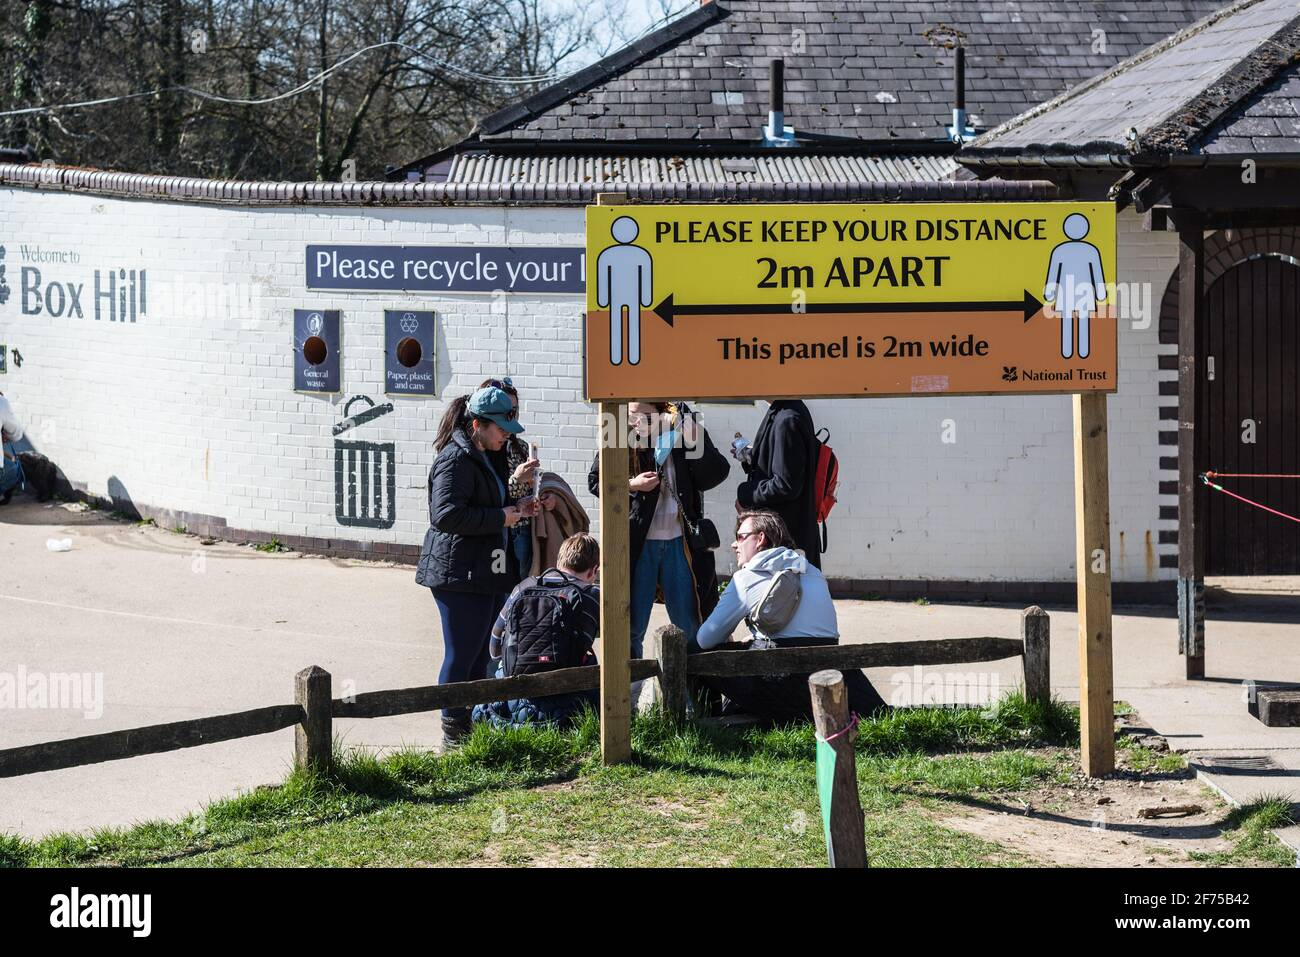 keep-2m-apart-notice-in-national-trust-boxhill-with-people-sitting-under-the-banner-in-group-2F75B42.jpg